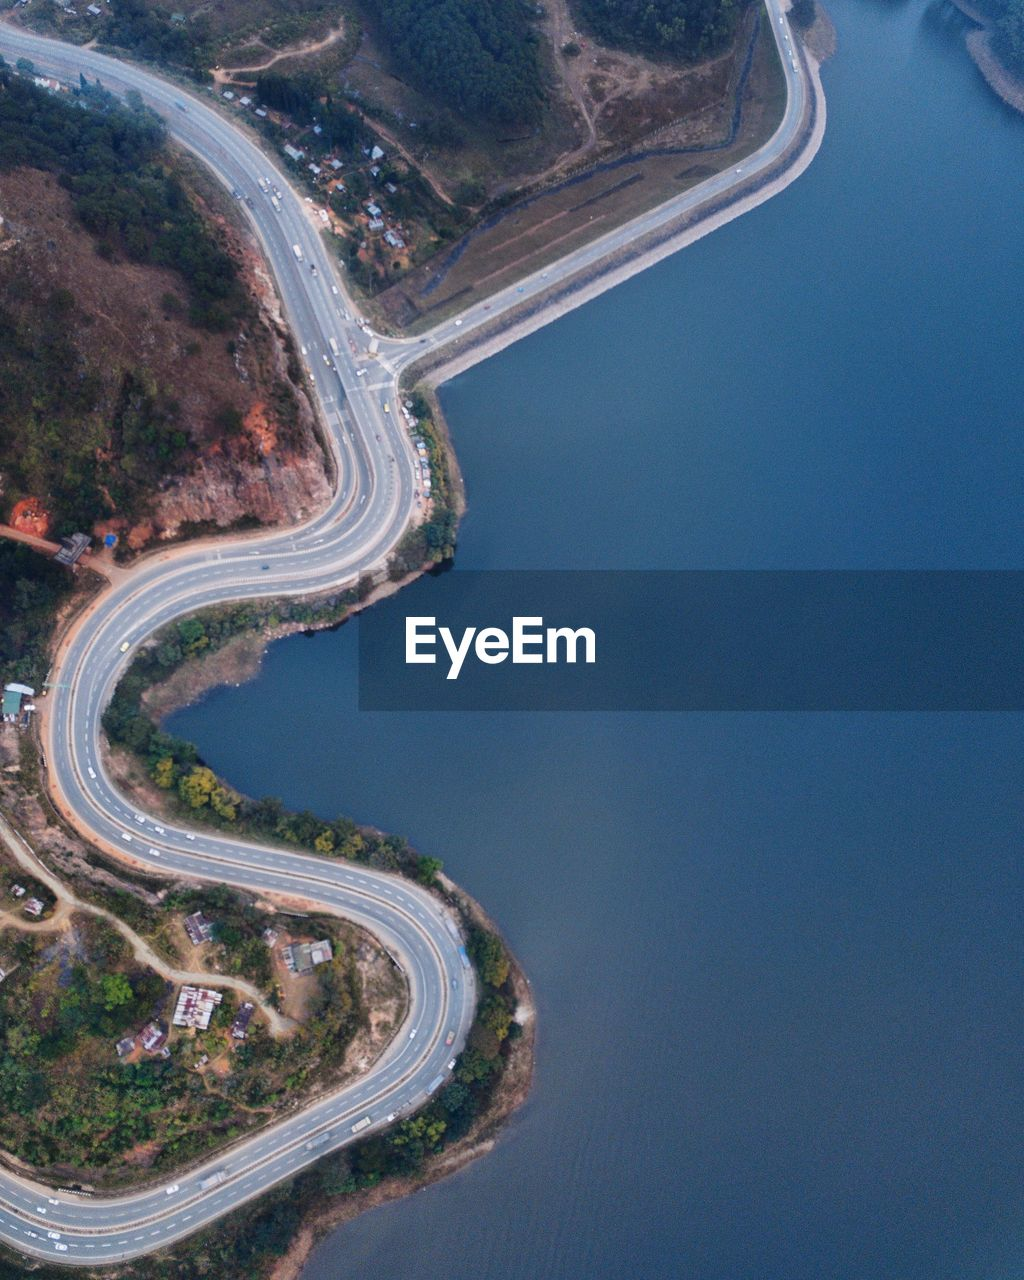 aerial view, road, curve, outdoors, winding road, day, transportation, landscape, high angle view, water, no people, mountain, mountain road, tree, scenics, nature, beauty in nature, sky